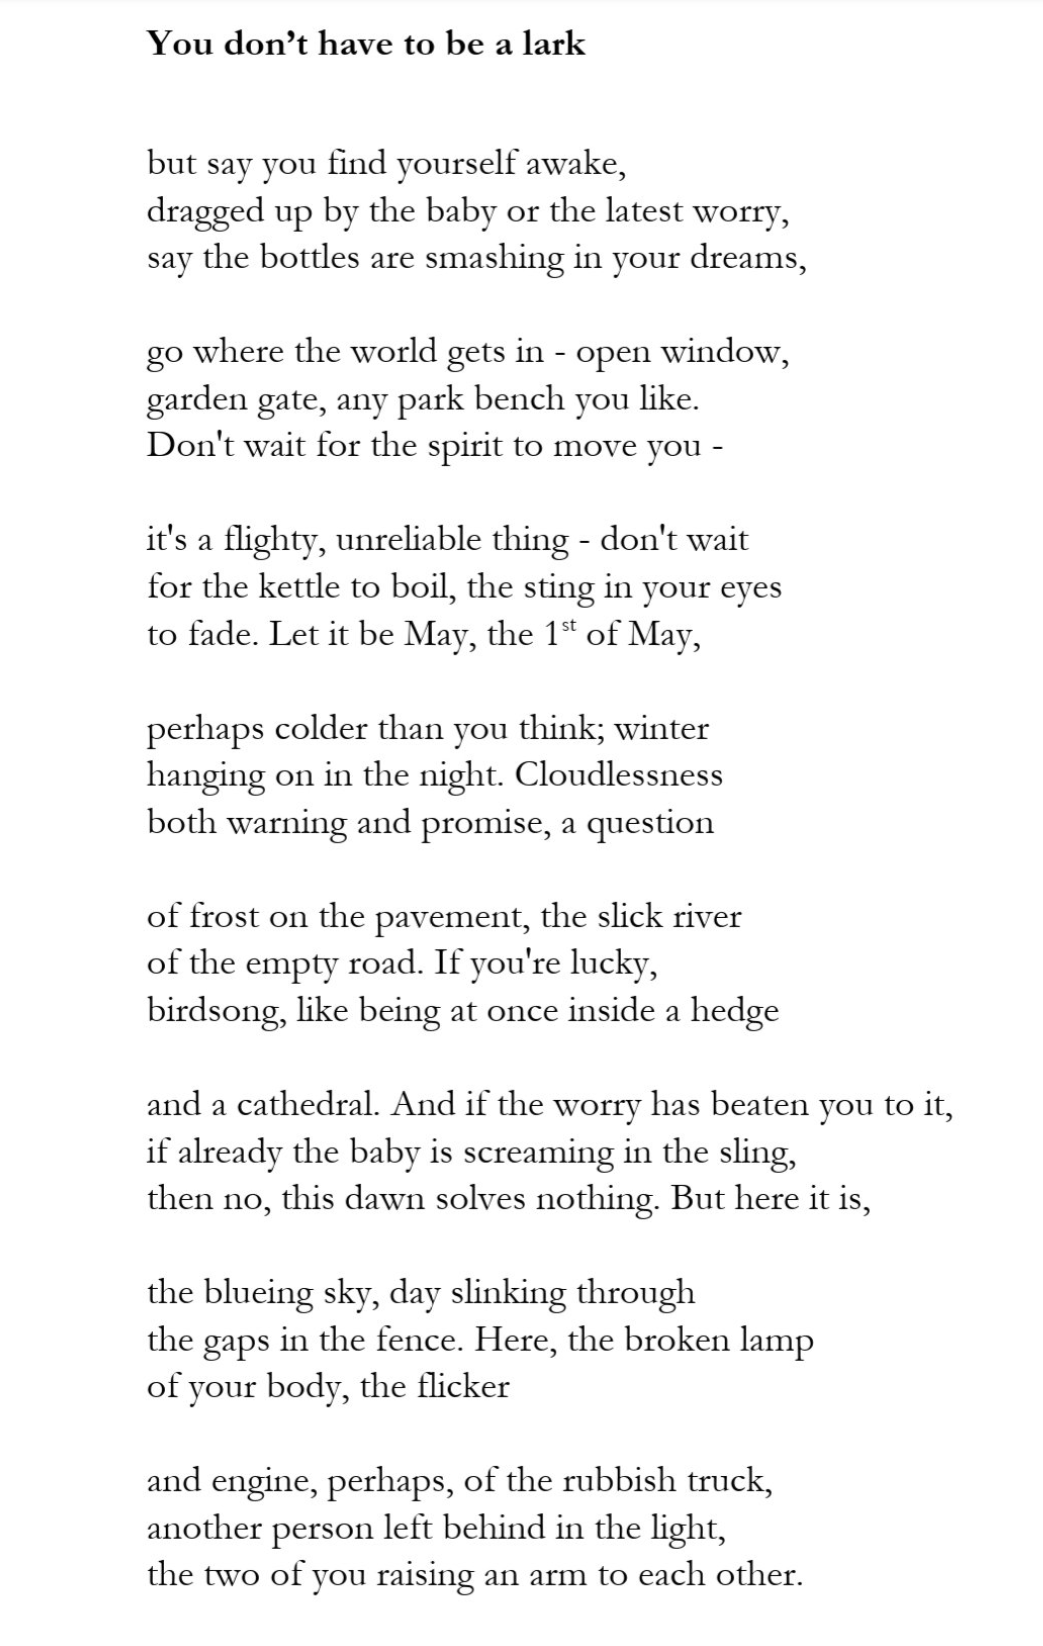 you don't have to be a lark by Jonathon Totman